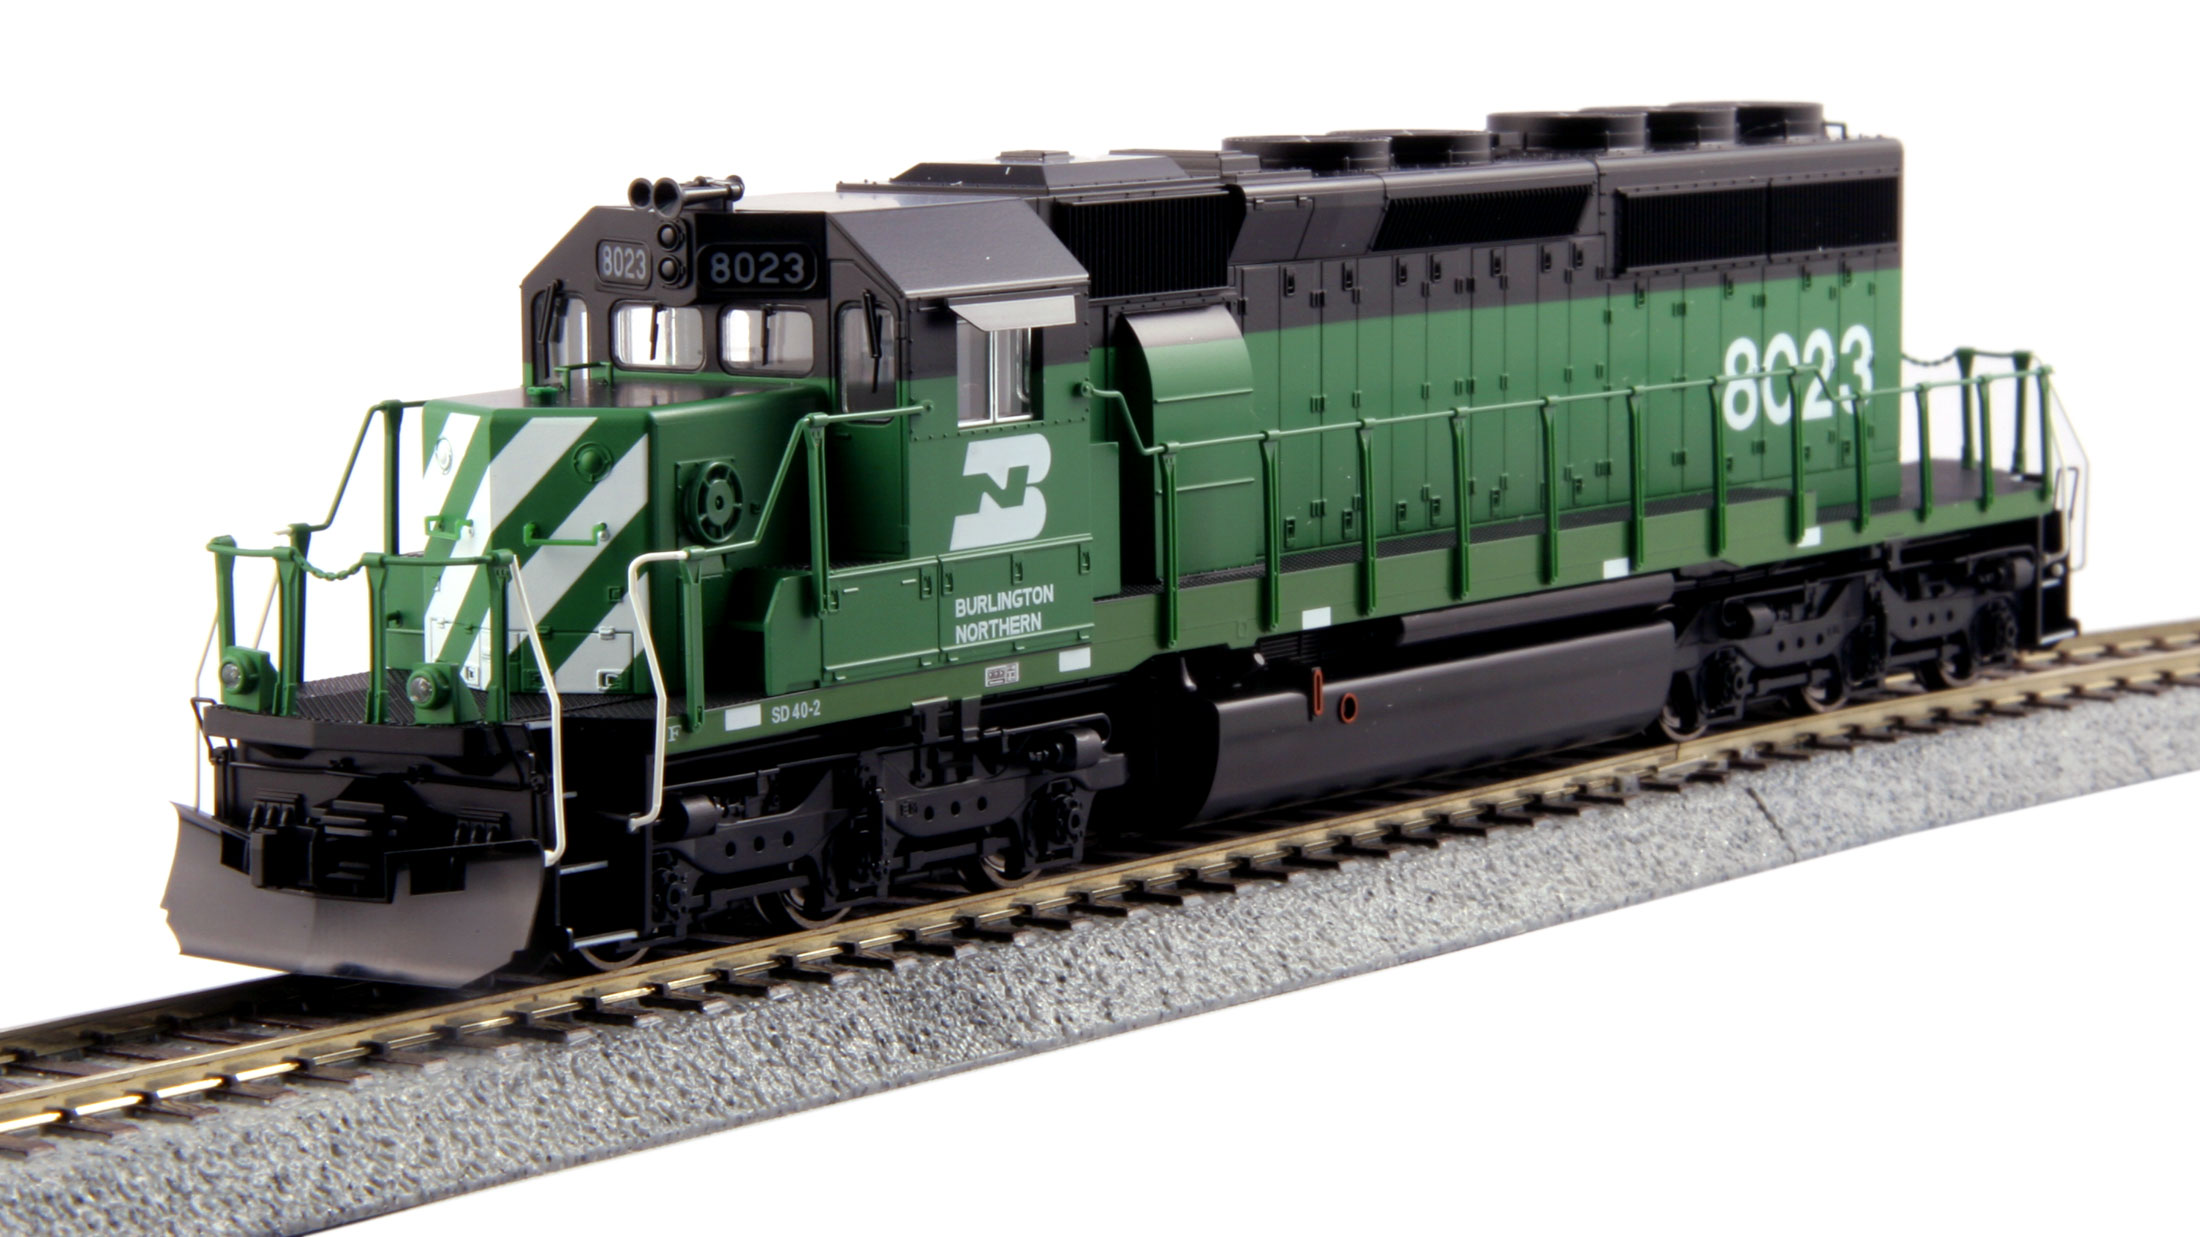 Kato 37-6605 HO Burlington Northern EMD SD40-2 Mid Cab Headlight #8023 This is a Kato 37-6605 HO Scale Burlington Northern EMD SD40-2 Mid Cab Headlight Standard #8023. Model Features: All handrails and grab irons are factory installed, making the model ready to go out of the box, Functional ditch lights that can be switched between alternating and steady modes on-the-fly, Great for pulling our Gunderson MAXI-IV double stack well cars, Locomotives feature directional Golden White LED headlights and illuminated preprinted numberboards, Sound friendly construction with a speaker housing in the fuel tank and Ditch lights can be synchronized with horn or bell functions with the installation of an 8-pin sound decoder.Condition: Factory New (C-9All original; unused; factory rubs and evidence of handling, shipping and factory test run.Standards for all toy train related accessory items apply to the visual appearance of the item and do not consider the operating functionality of the equipment.Condition and Grading Standards are subjective, at best, and are intended to act as a guide. )Operational Status: FunctionalThis item is brand new from the factory.Original Box: Yes (P-9May have store stamps and price tags. Has inner liners.)Manufacturer: KatoModel Number: 37-6605Road Name: Burlington NorthernMSRP: $185.00Scale/Era: HO ModernModel Type: Diesel LocoAvailability: Ships in 1 Business Day!The Trainz SKU for this item is P12163213. Track: 12163213 - No Location Assigned - 001 - TrainzAuctionGroup00UNK - TDIDUNK